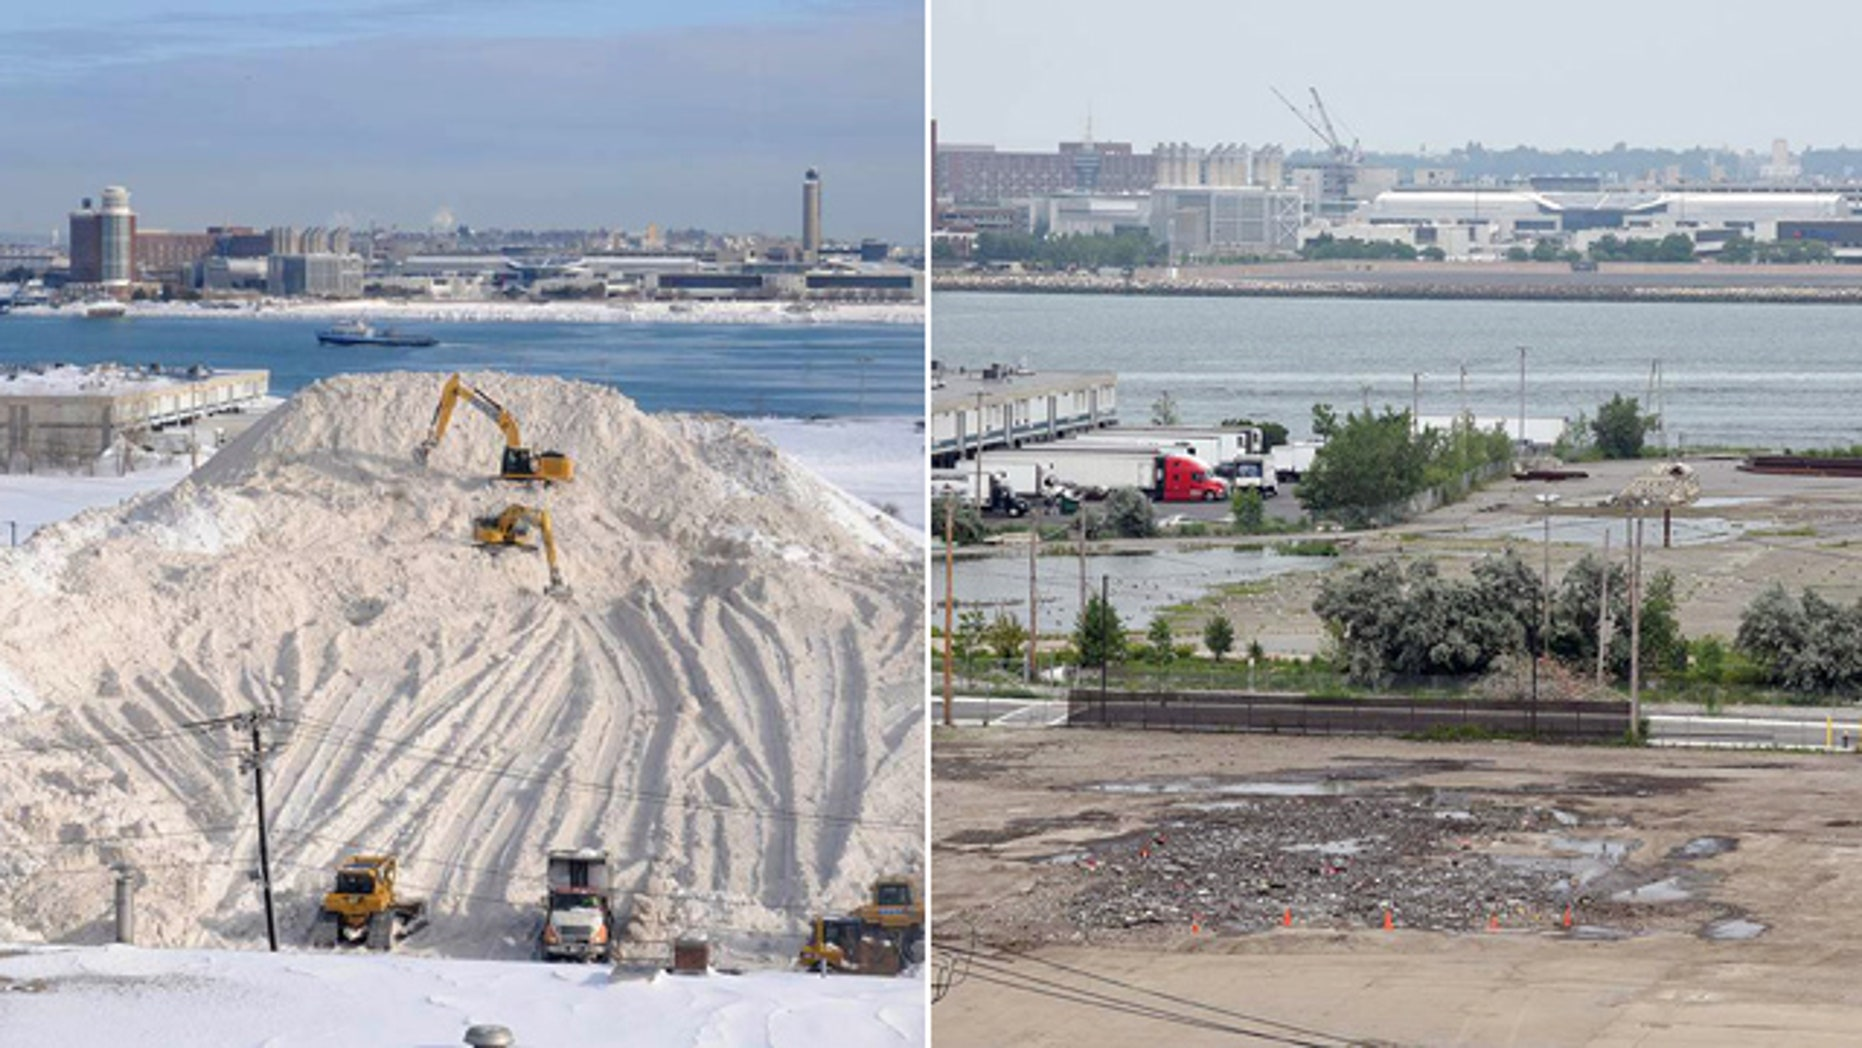 These photos, taken Feb. 18, left, and July 13, show the melting of a pile of snow in Boston. Mayor Martin Walsh announced Tuesday that the pile has officially dwindled to nothing. (Jim Walker/Conventures, Inc. via AP)